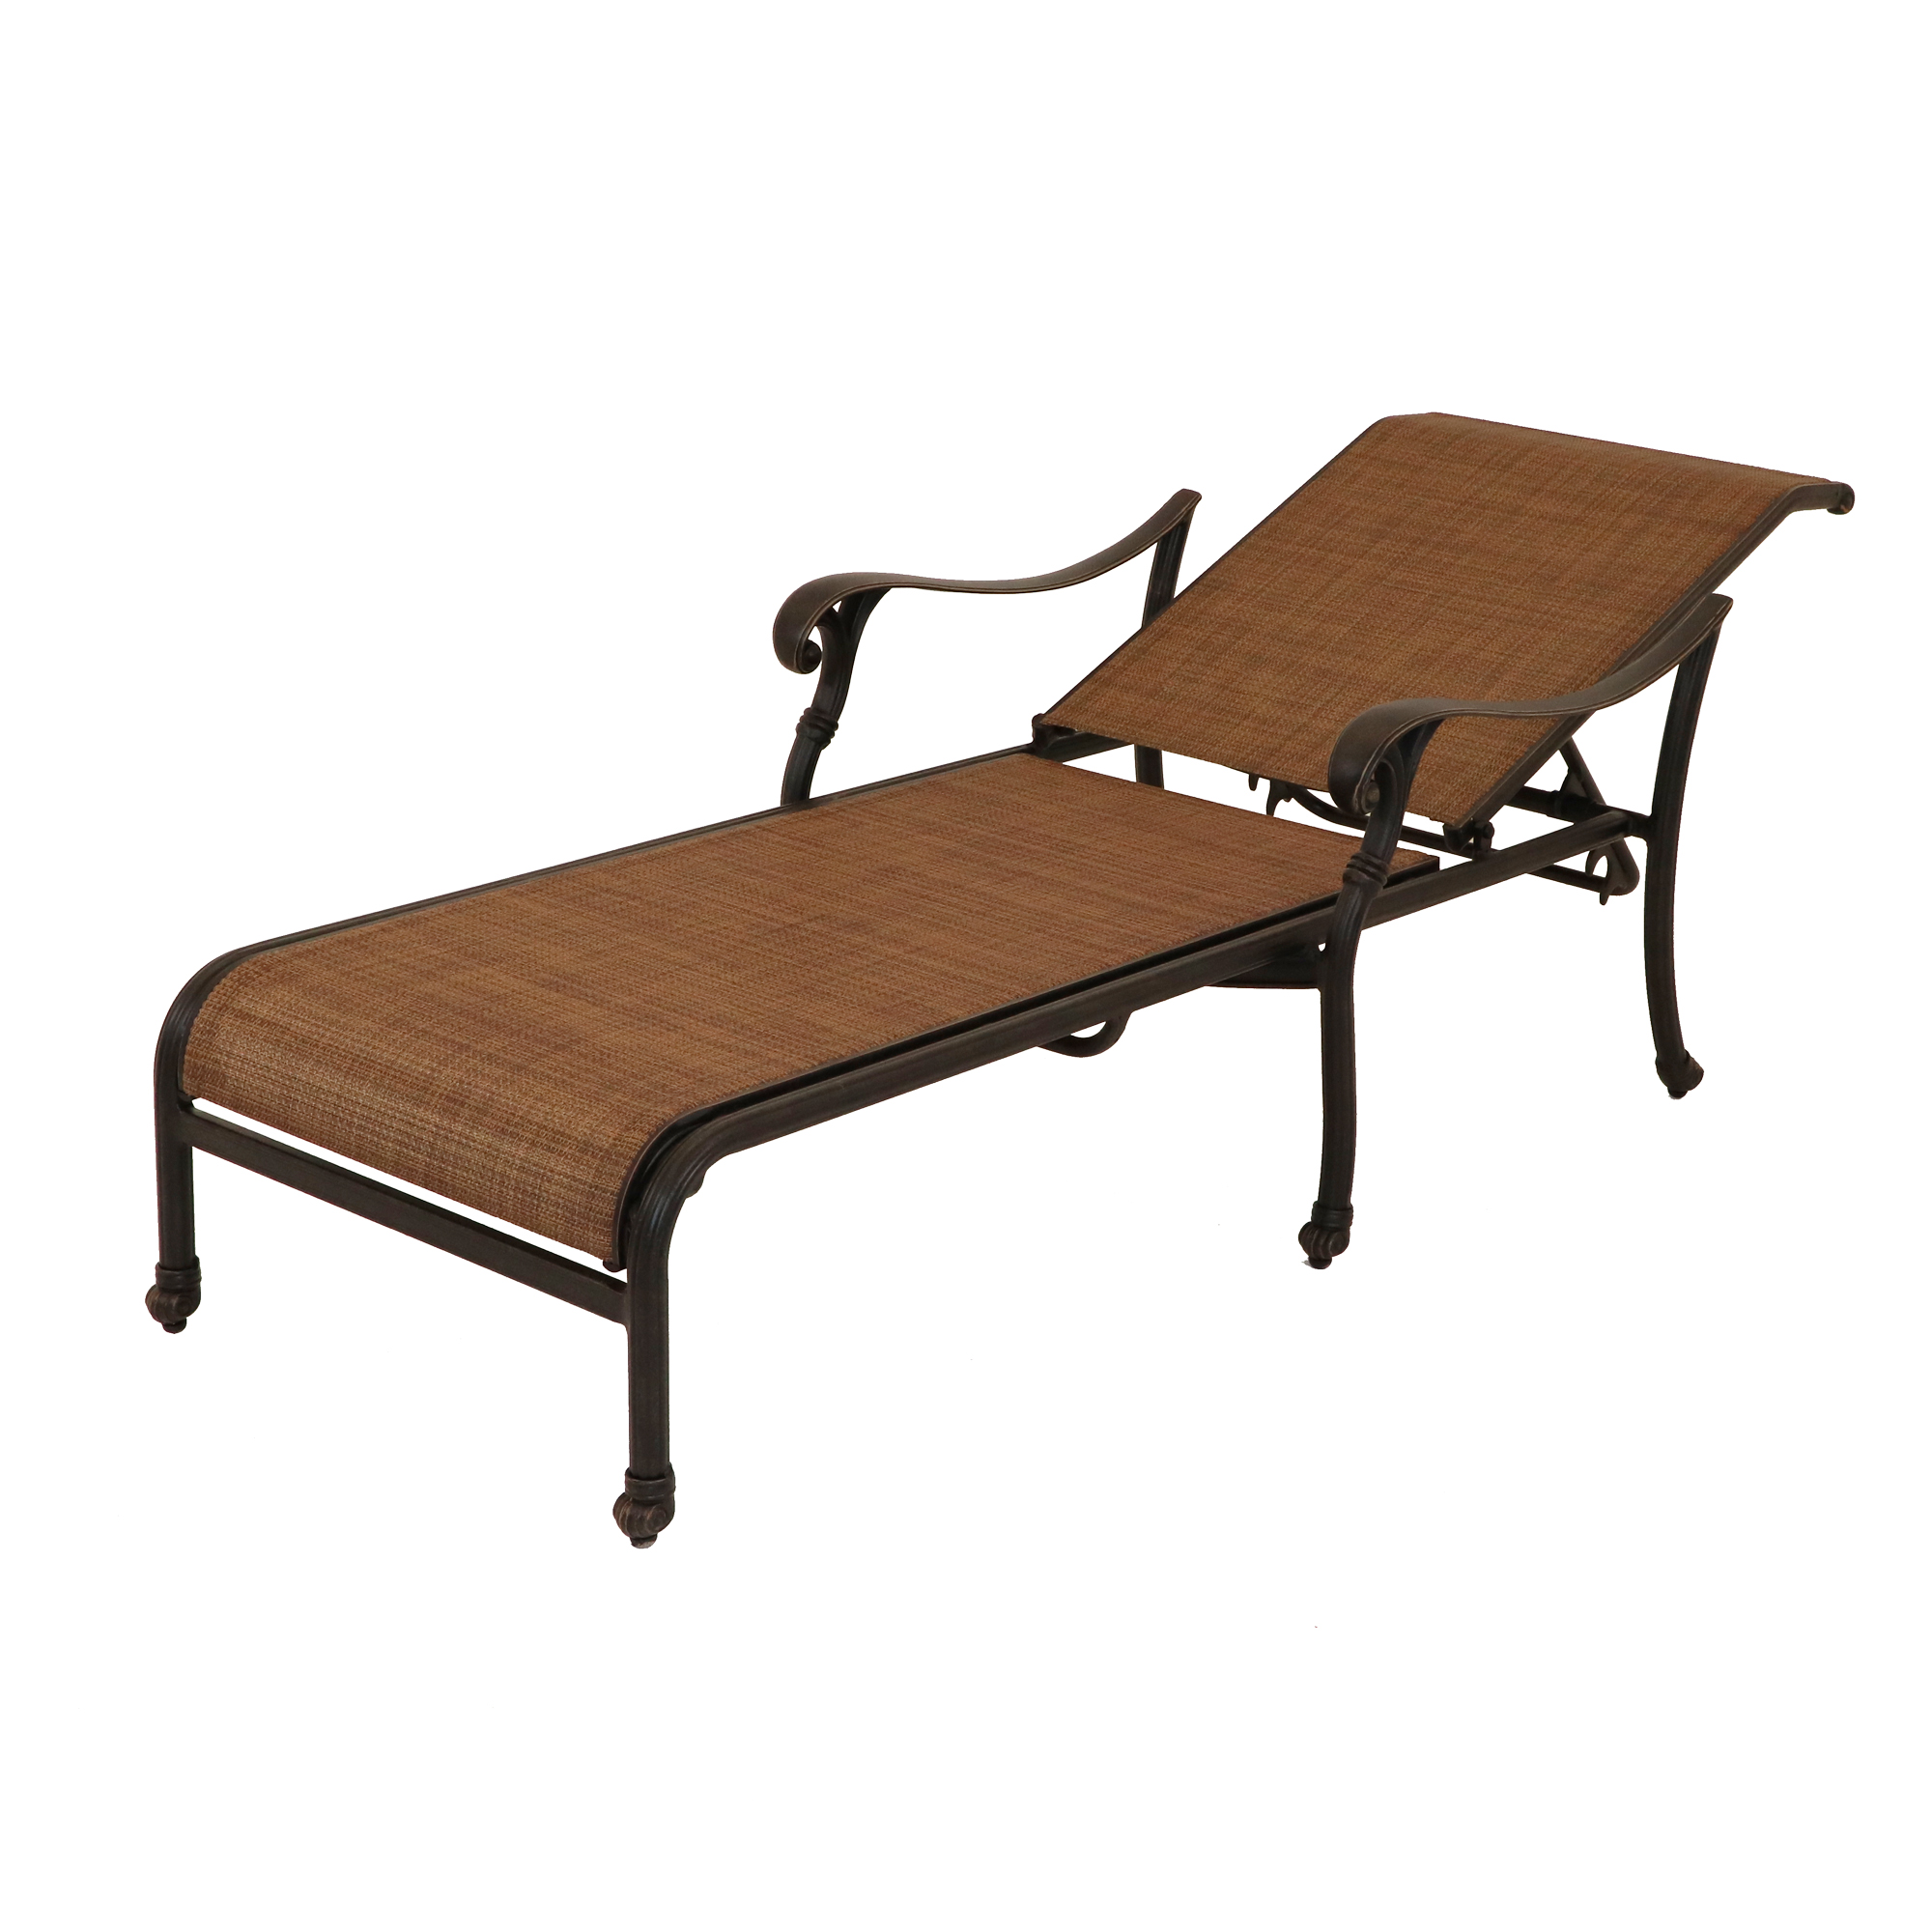 w teak fabrics lounge sunbrella collection cushion wb outdoor veranda double chaise